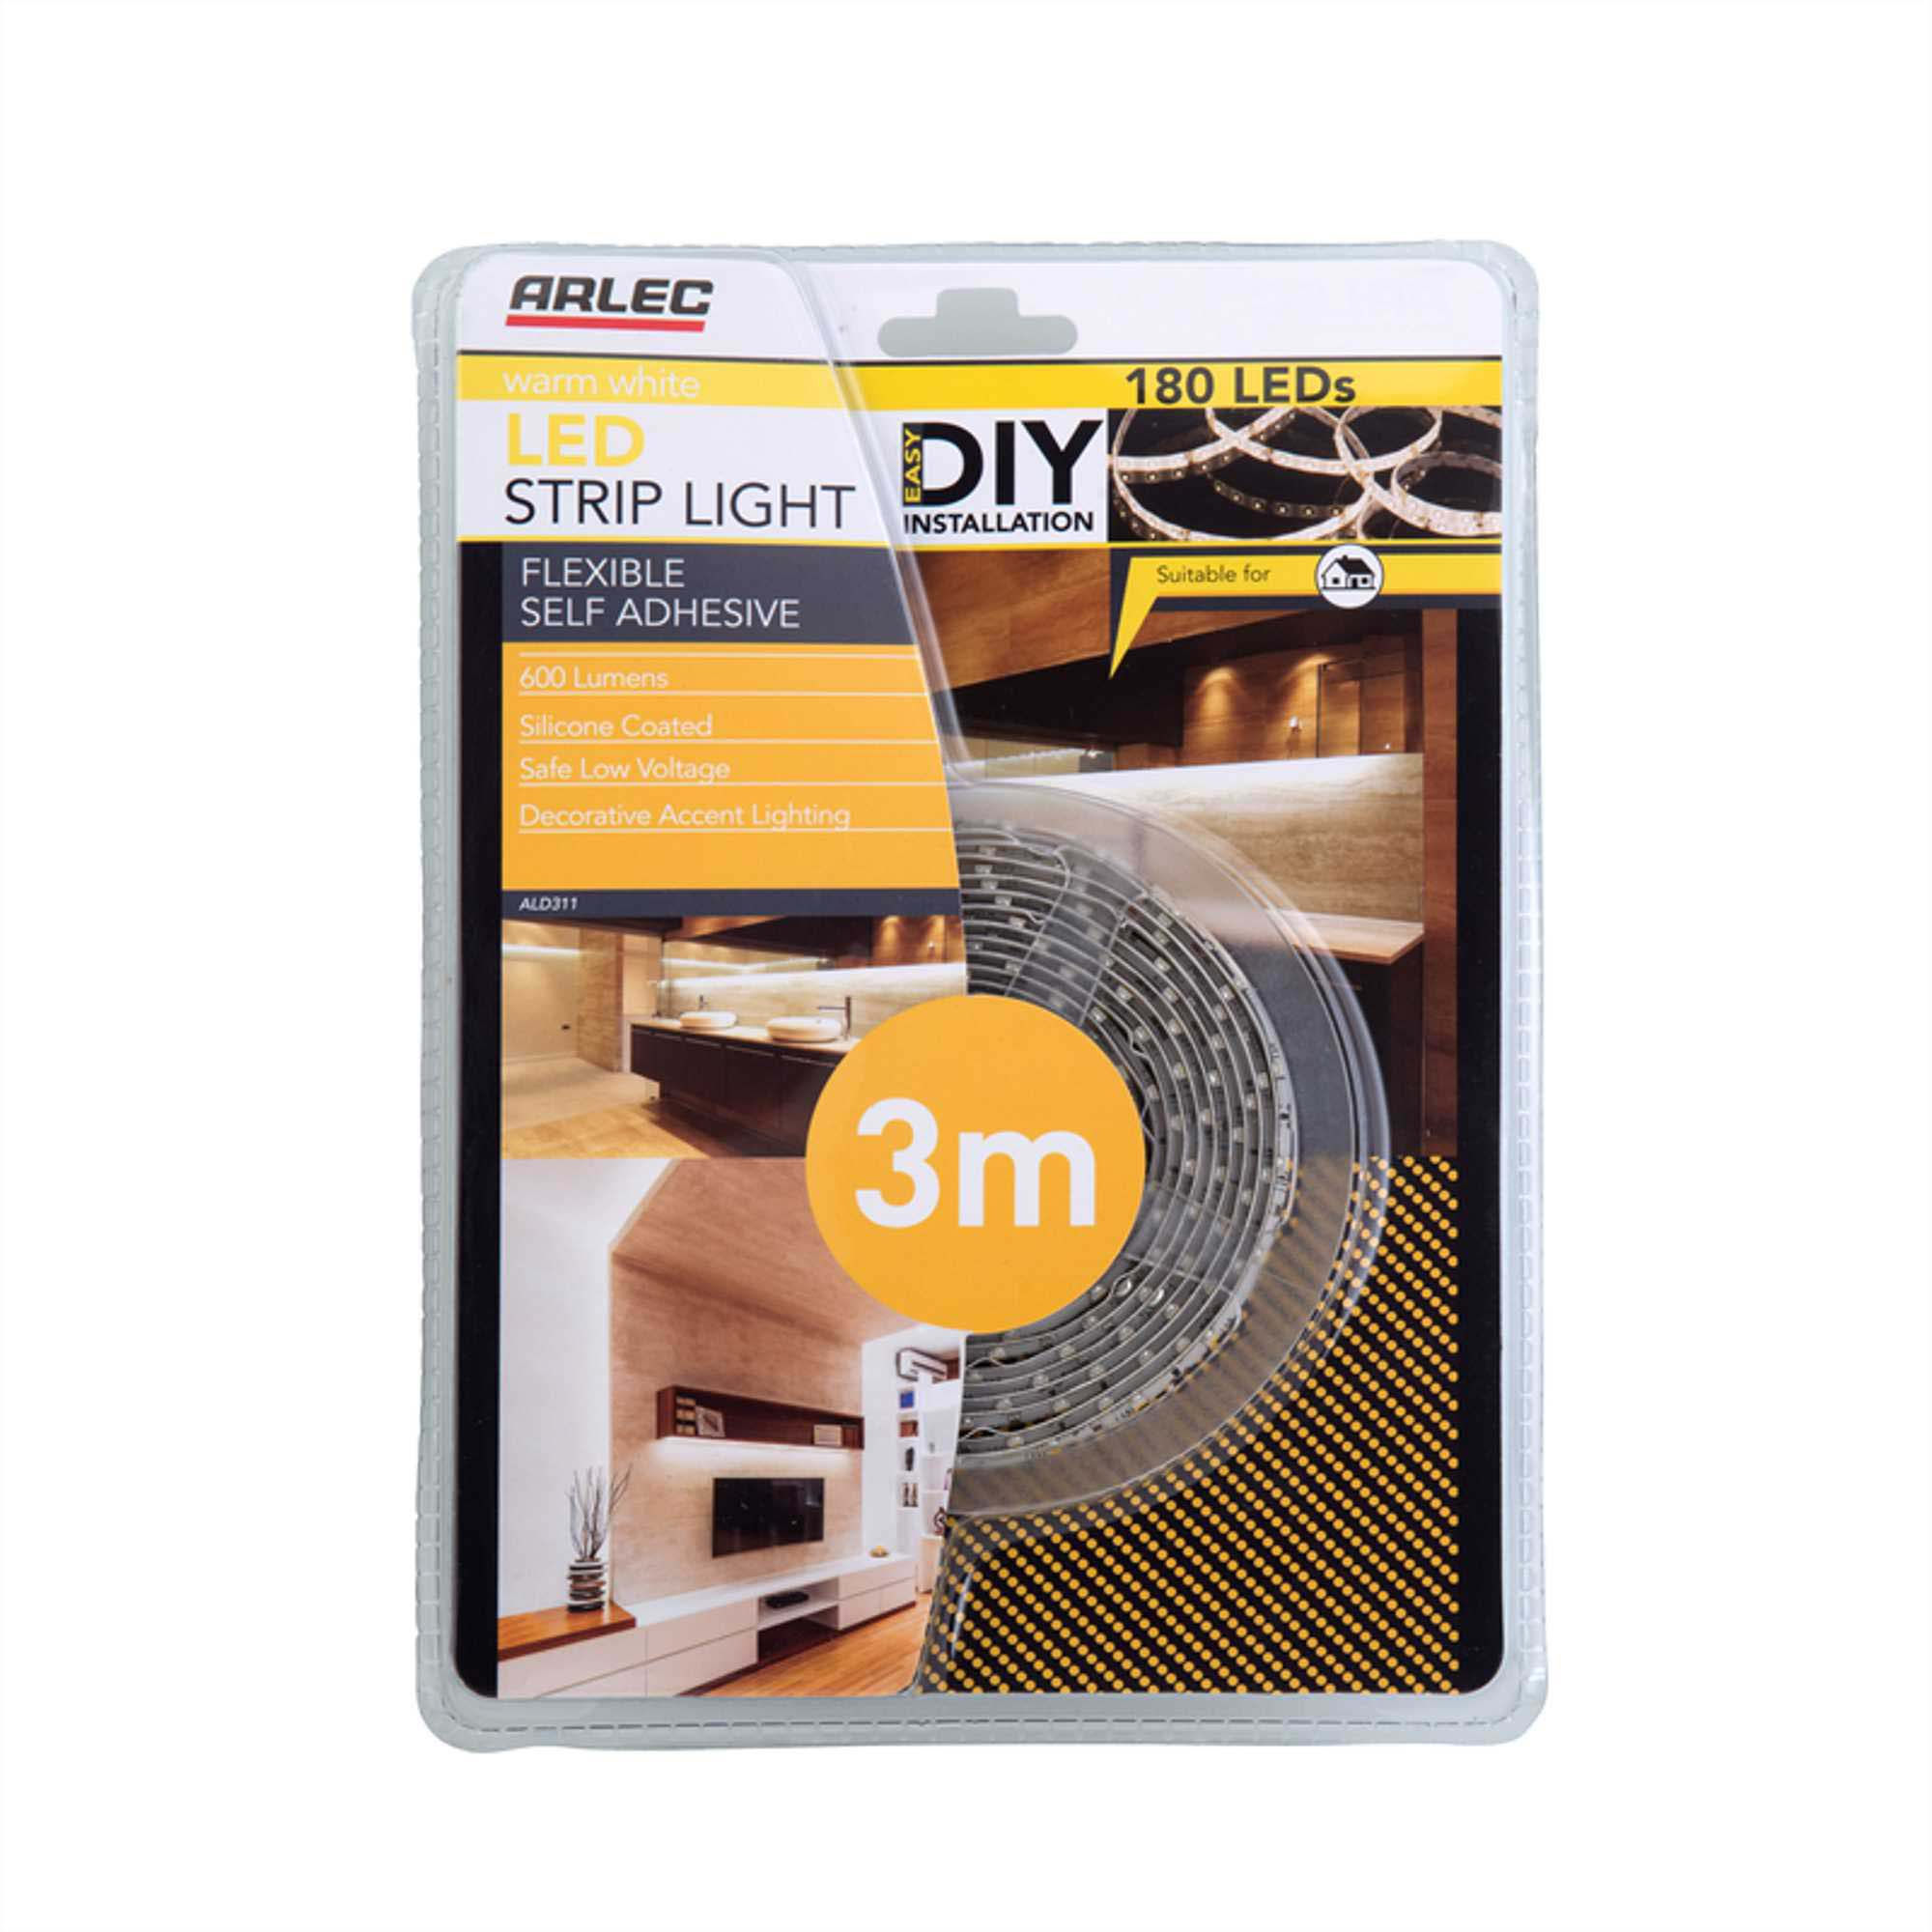 3m warm white silicone coated led strip light